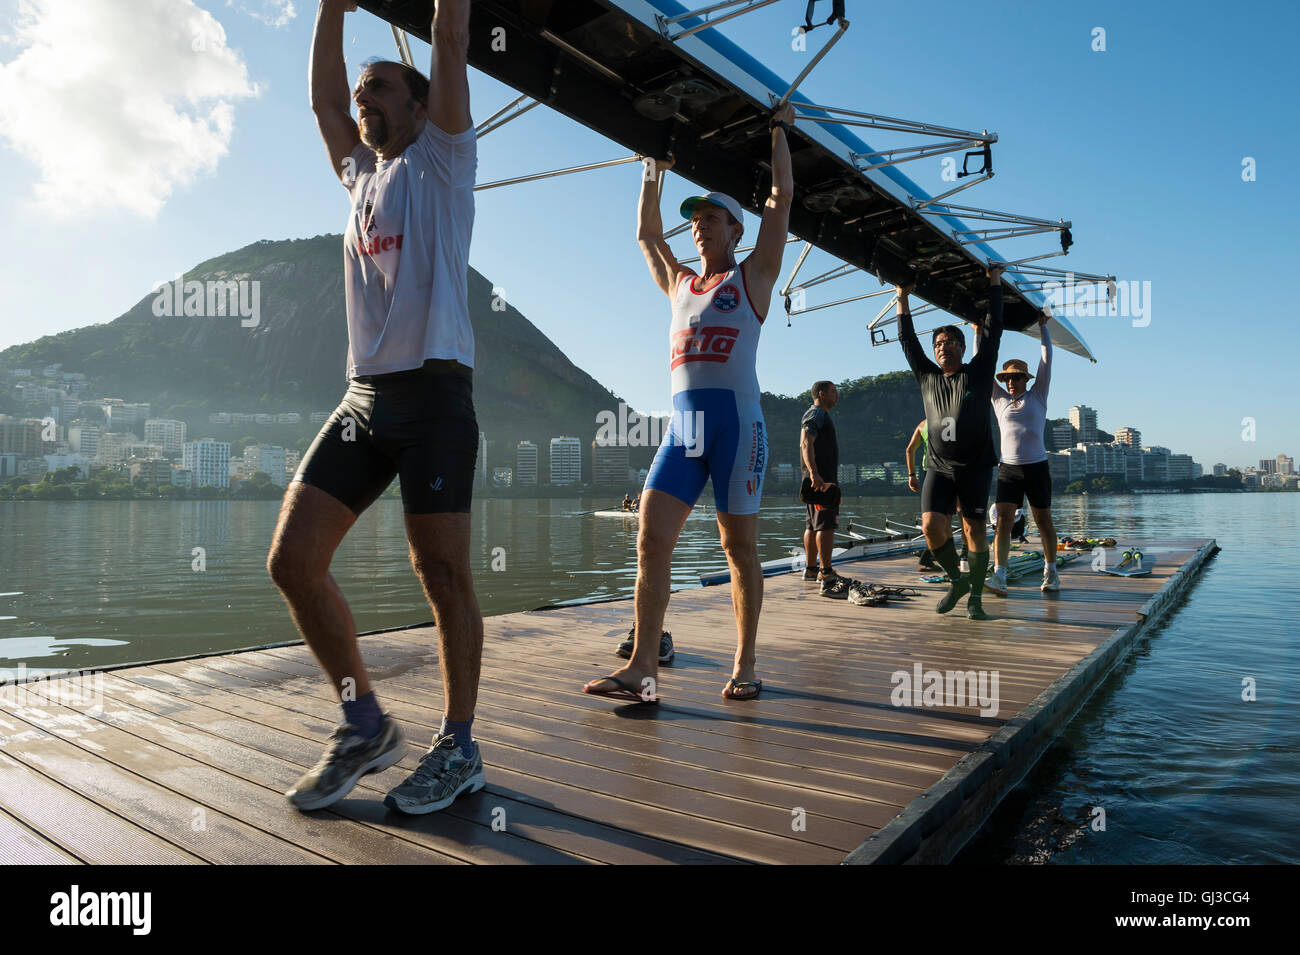 RIO DE JANEIRO - APRIL 1, 2016: Members of the Vasco da Gama rowing club carry their boat back to the clubhouse - Stock Image